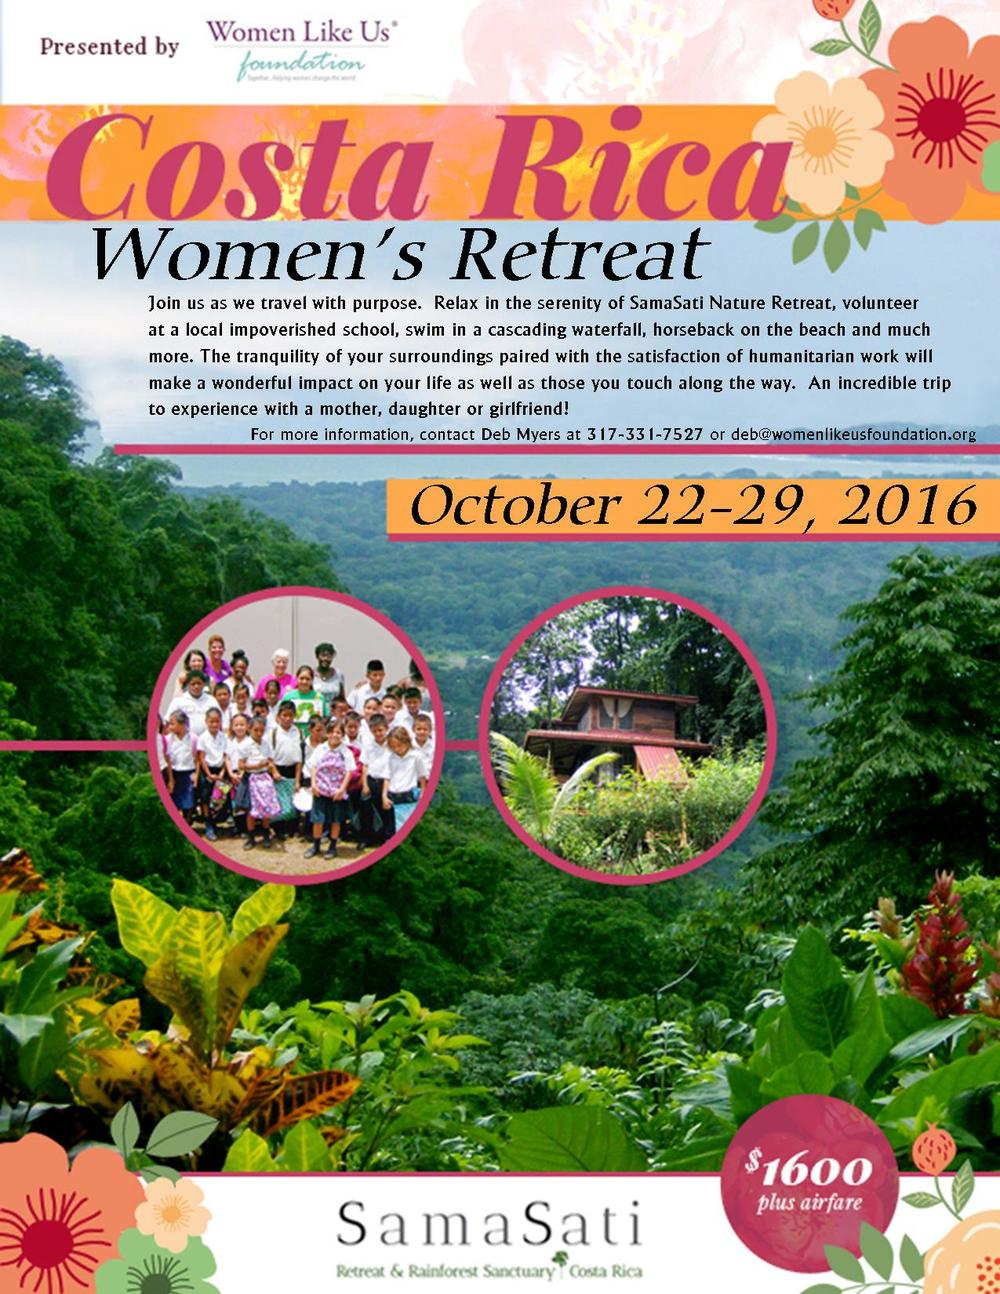 PLEASE CONTACT DEB MYERS, TRIP LEADER FOR MORE INFORMATION  Deb@womenlikeusfoundation.org